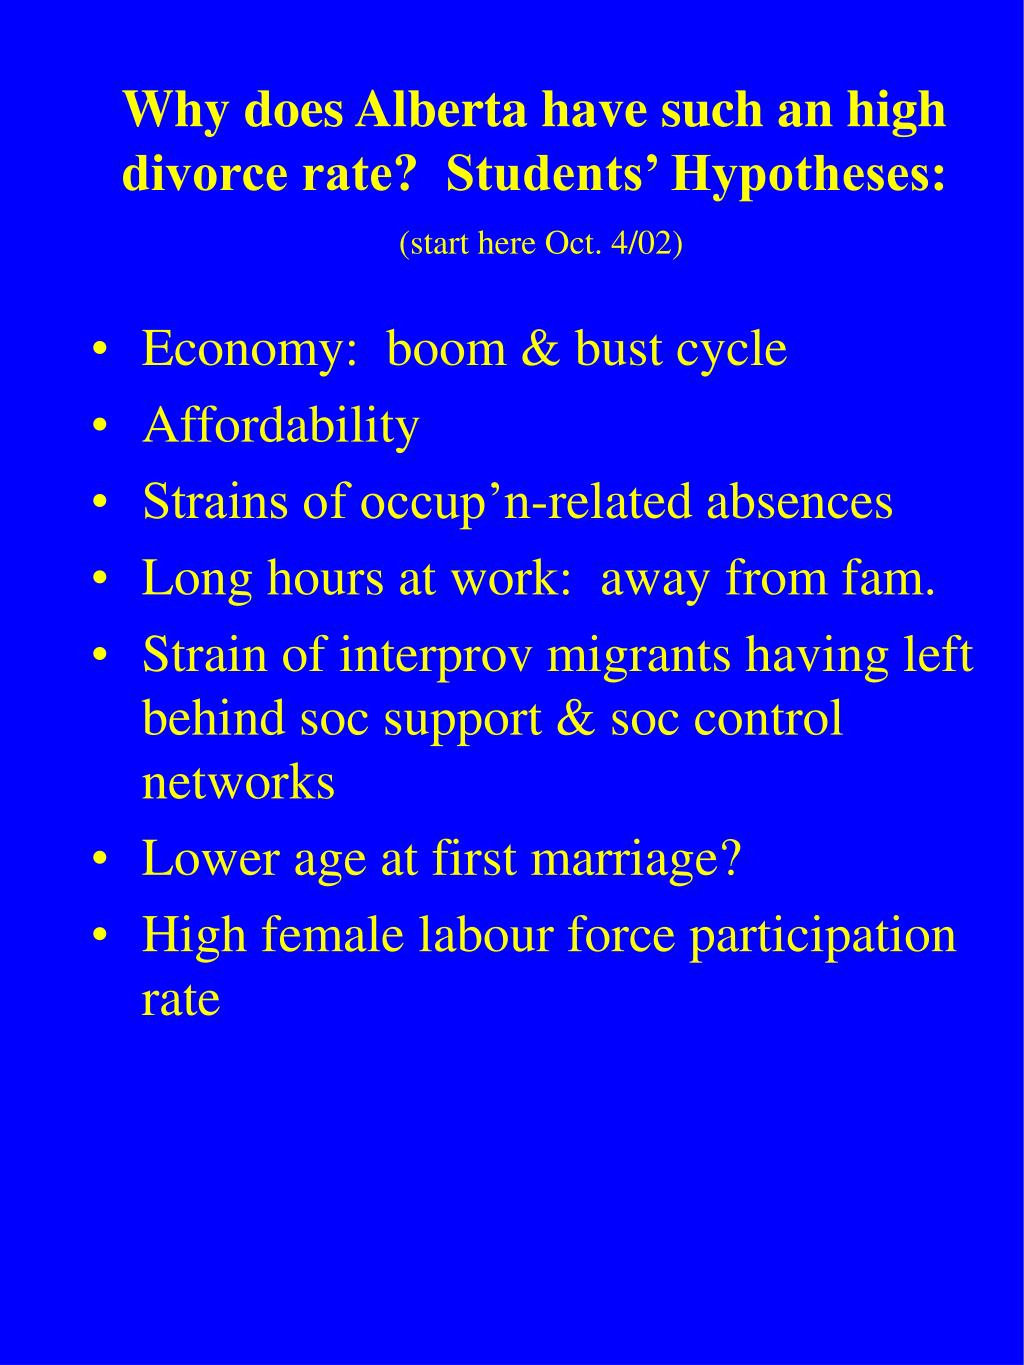 Why does Alberta have such an high divorce rate?  Students' Hypotheses: